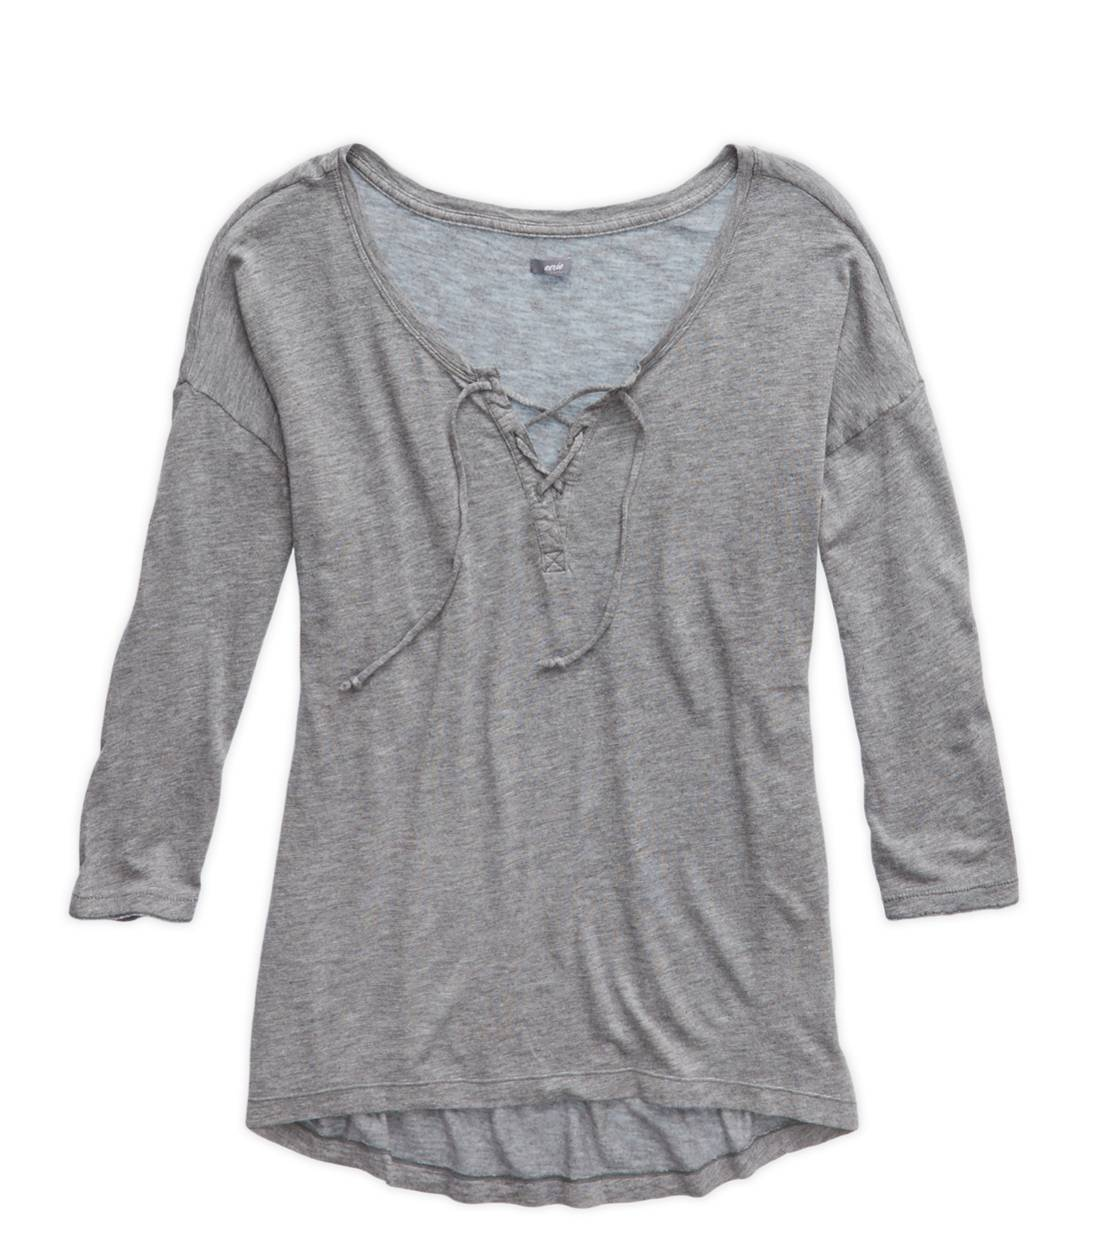 Dark Heather Grey Aerie Comfy Lace-Up T-Shirt